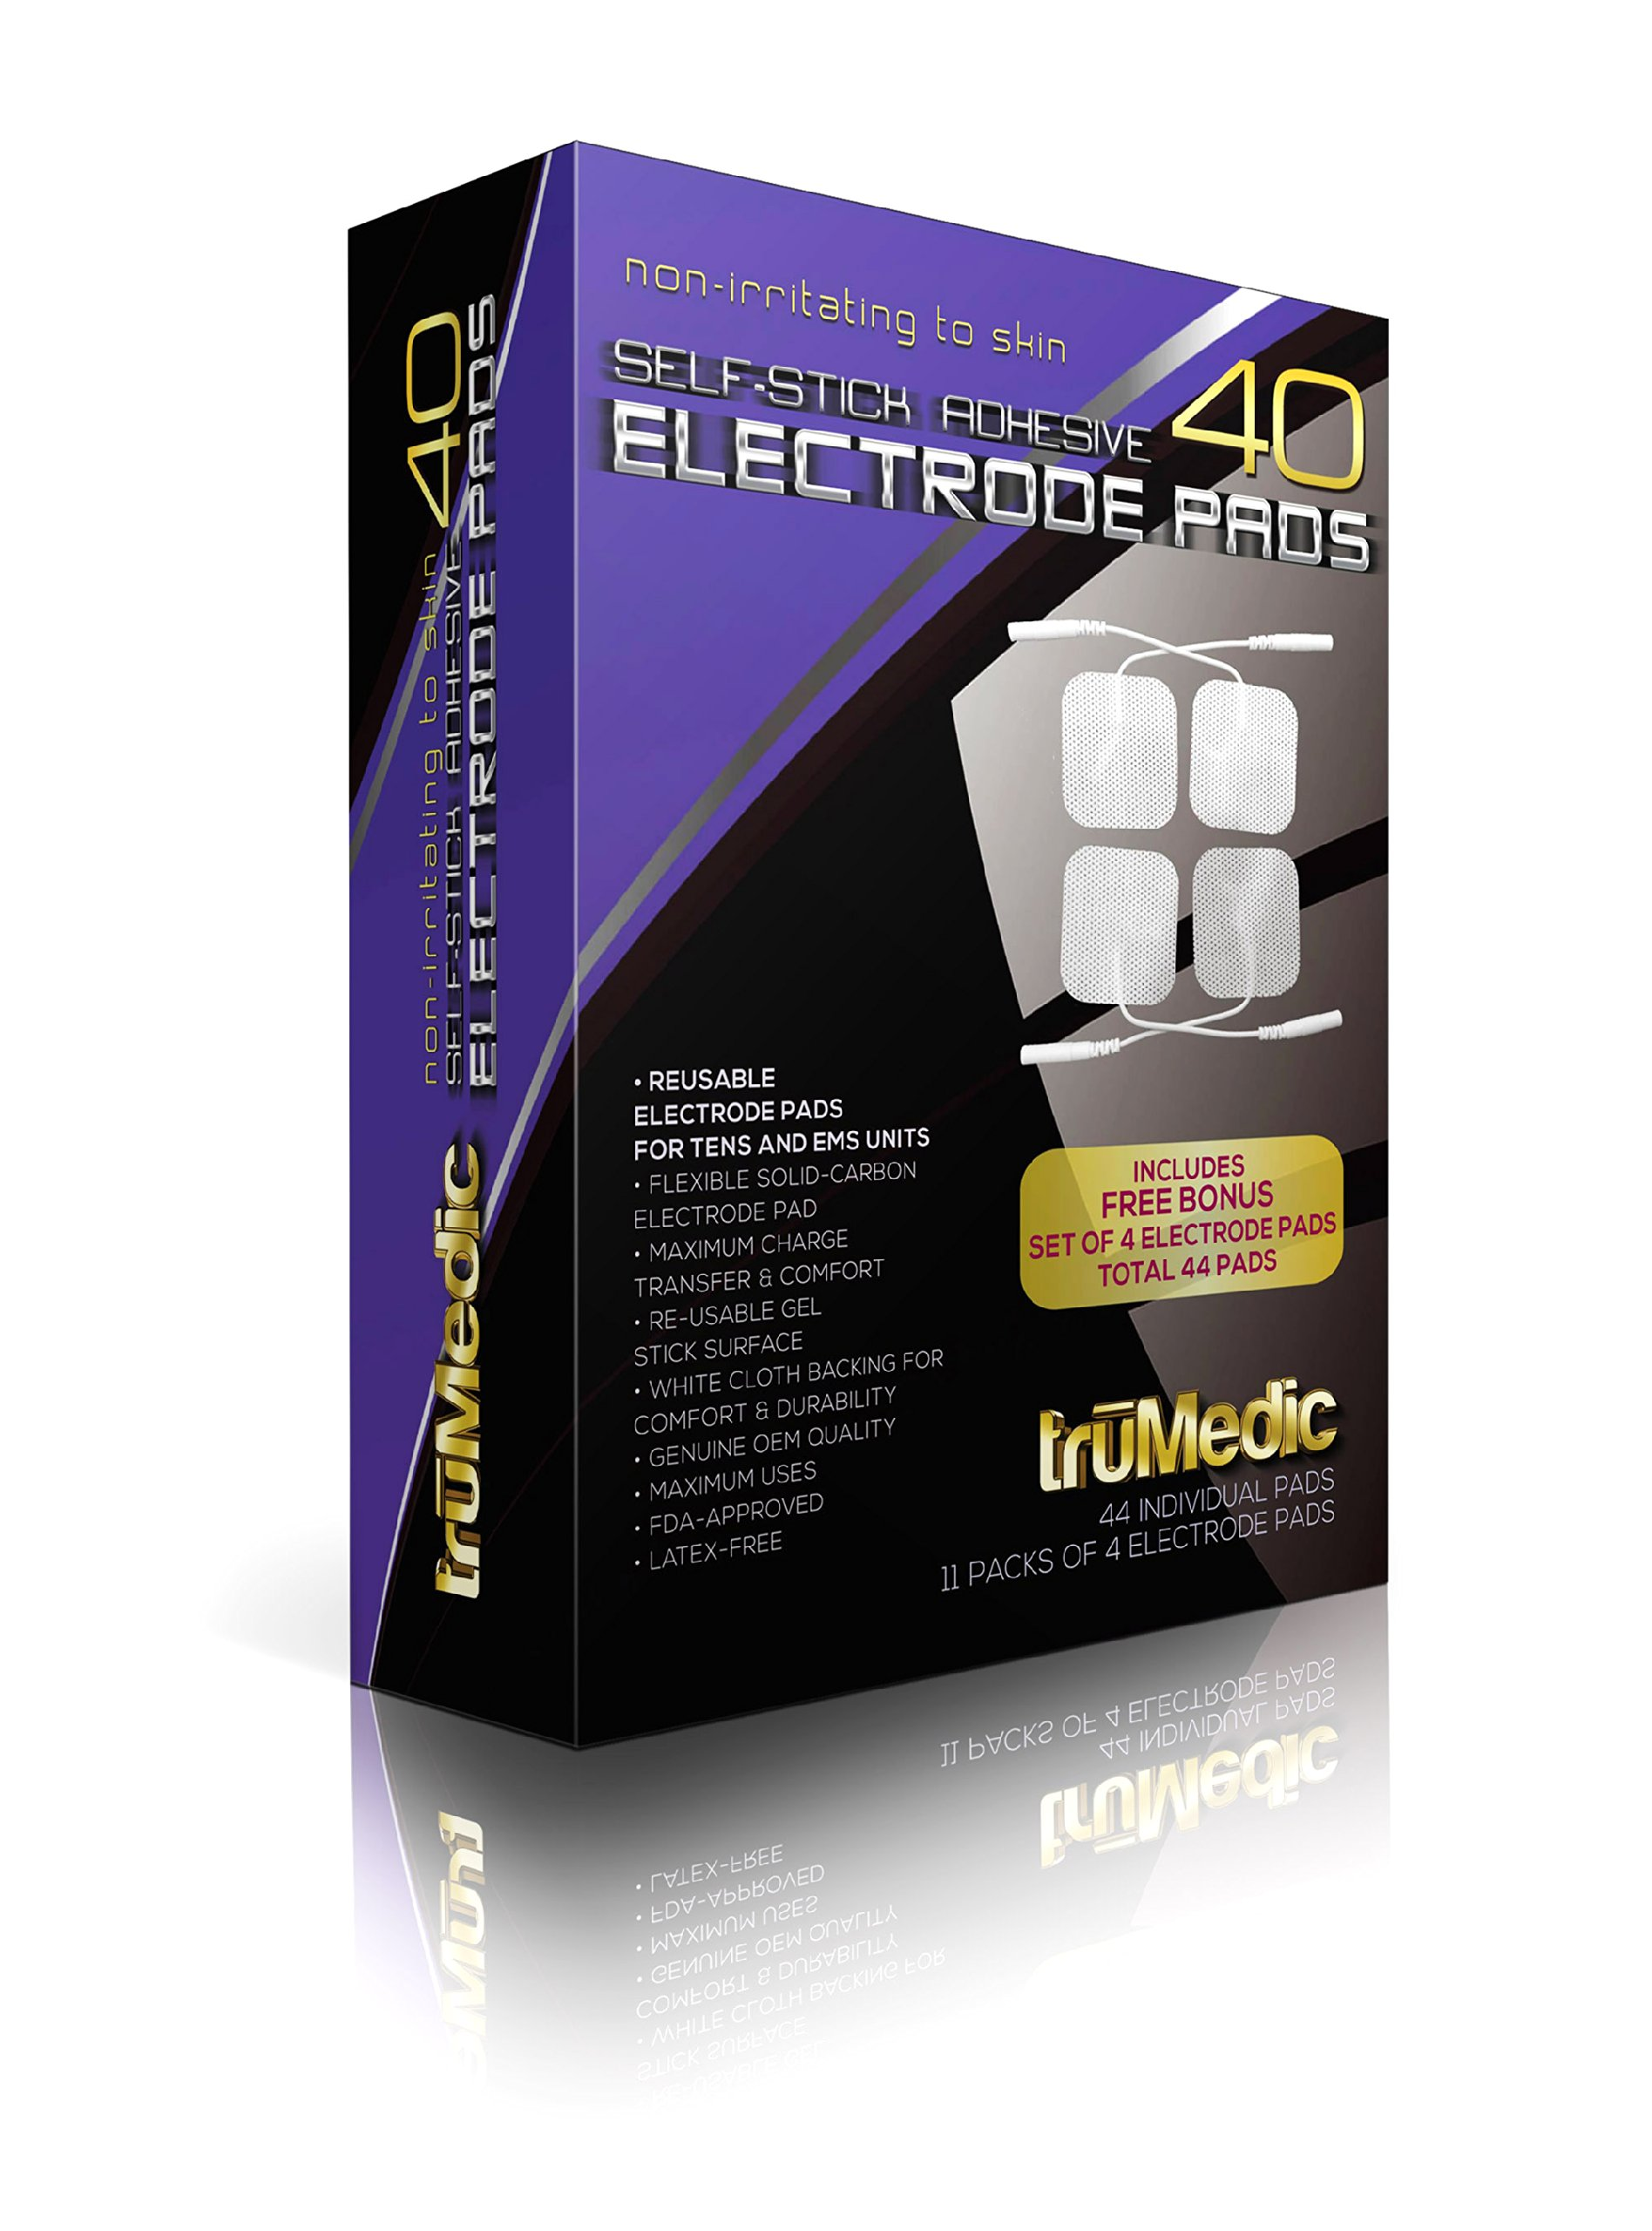 truMedic 40 Replacement Pads Oem Tens Electrode Pads with Bonus Set, White